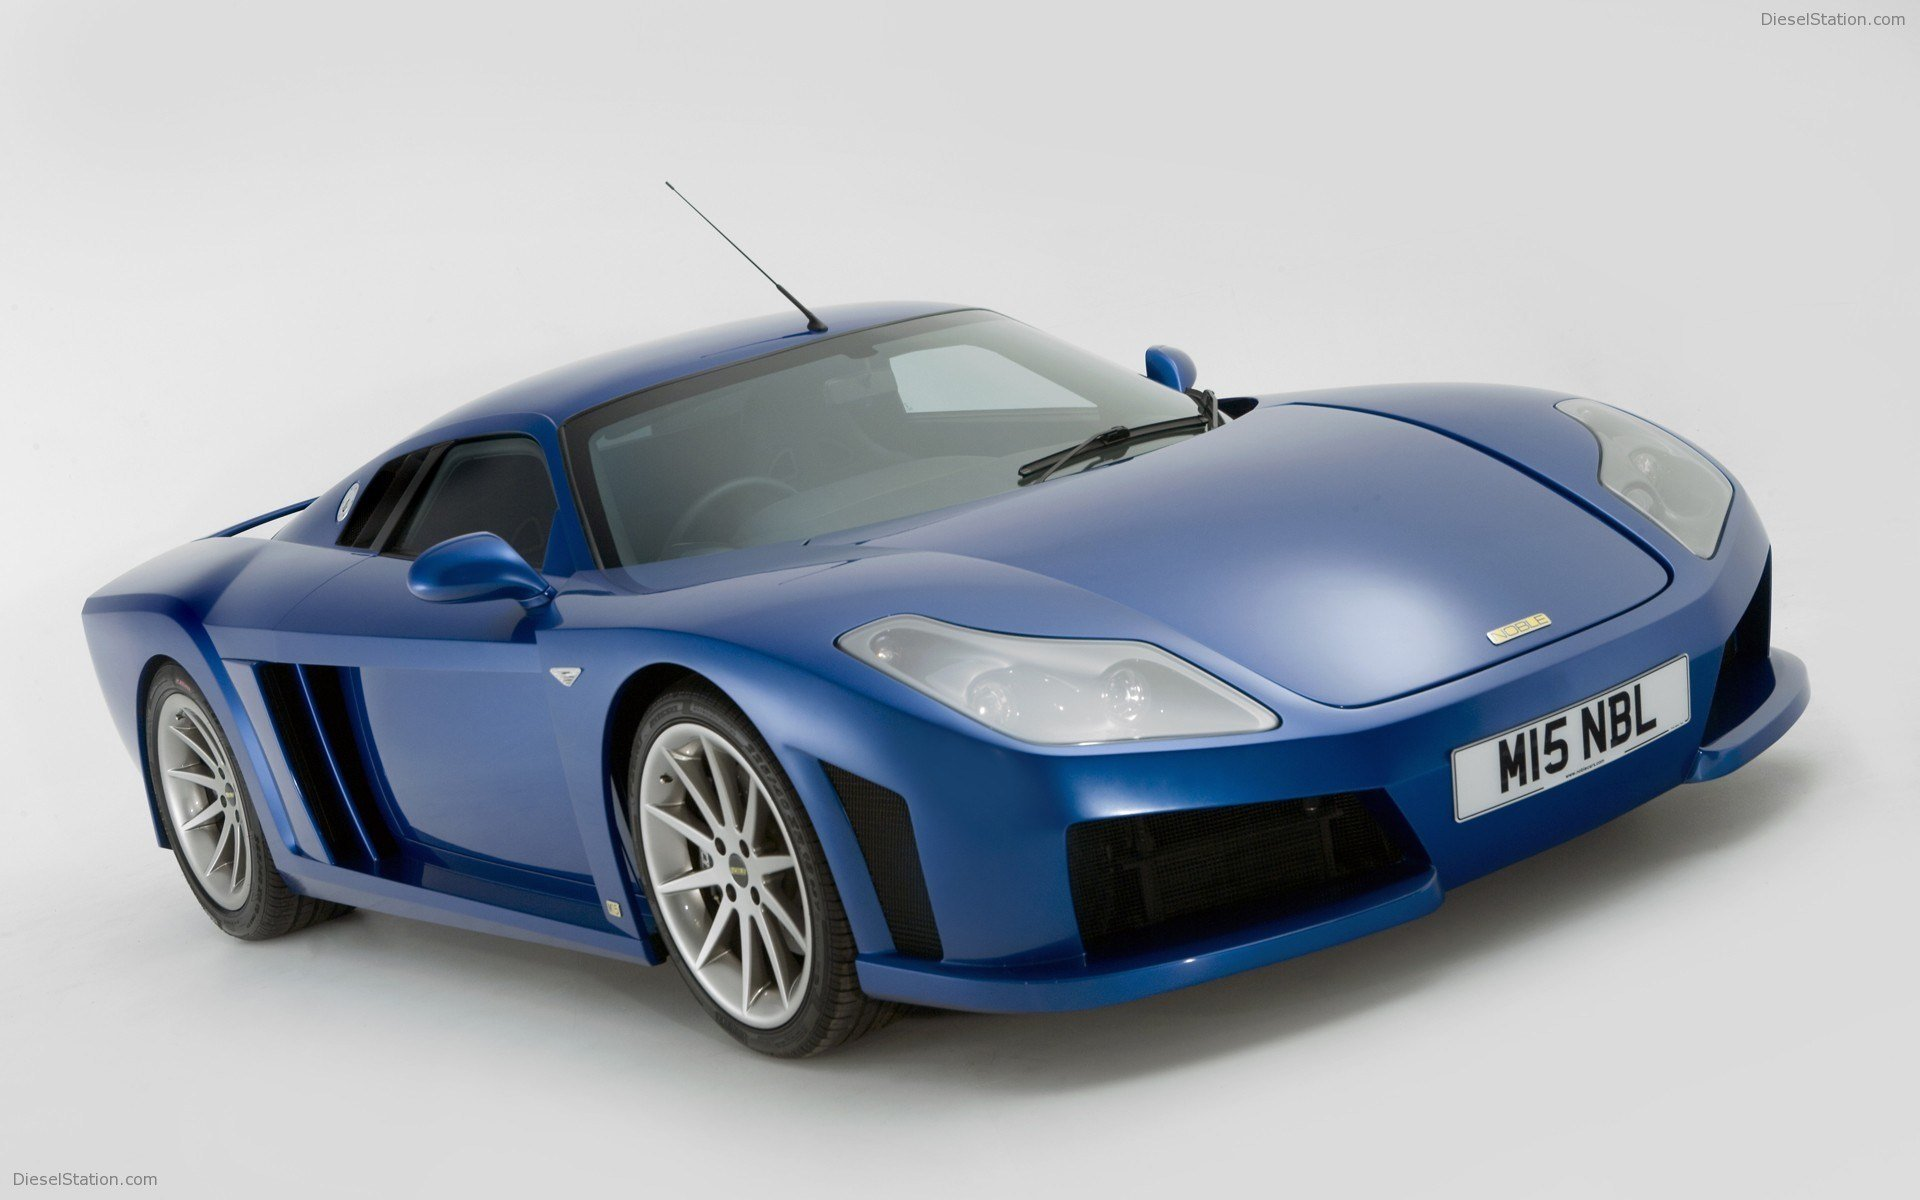 Latest Noble M15 Widescreen Exotic Car Wallpaper 015 Of 40 Free Download